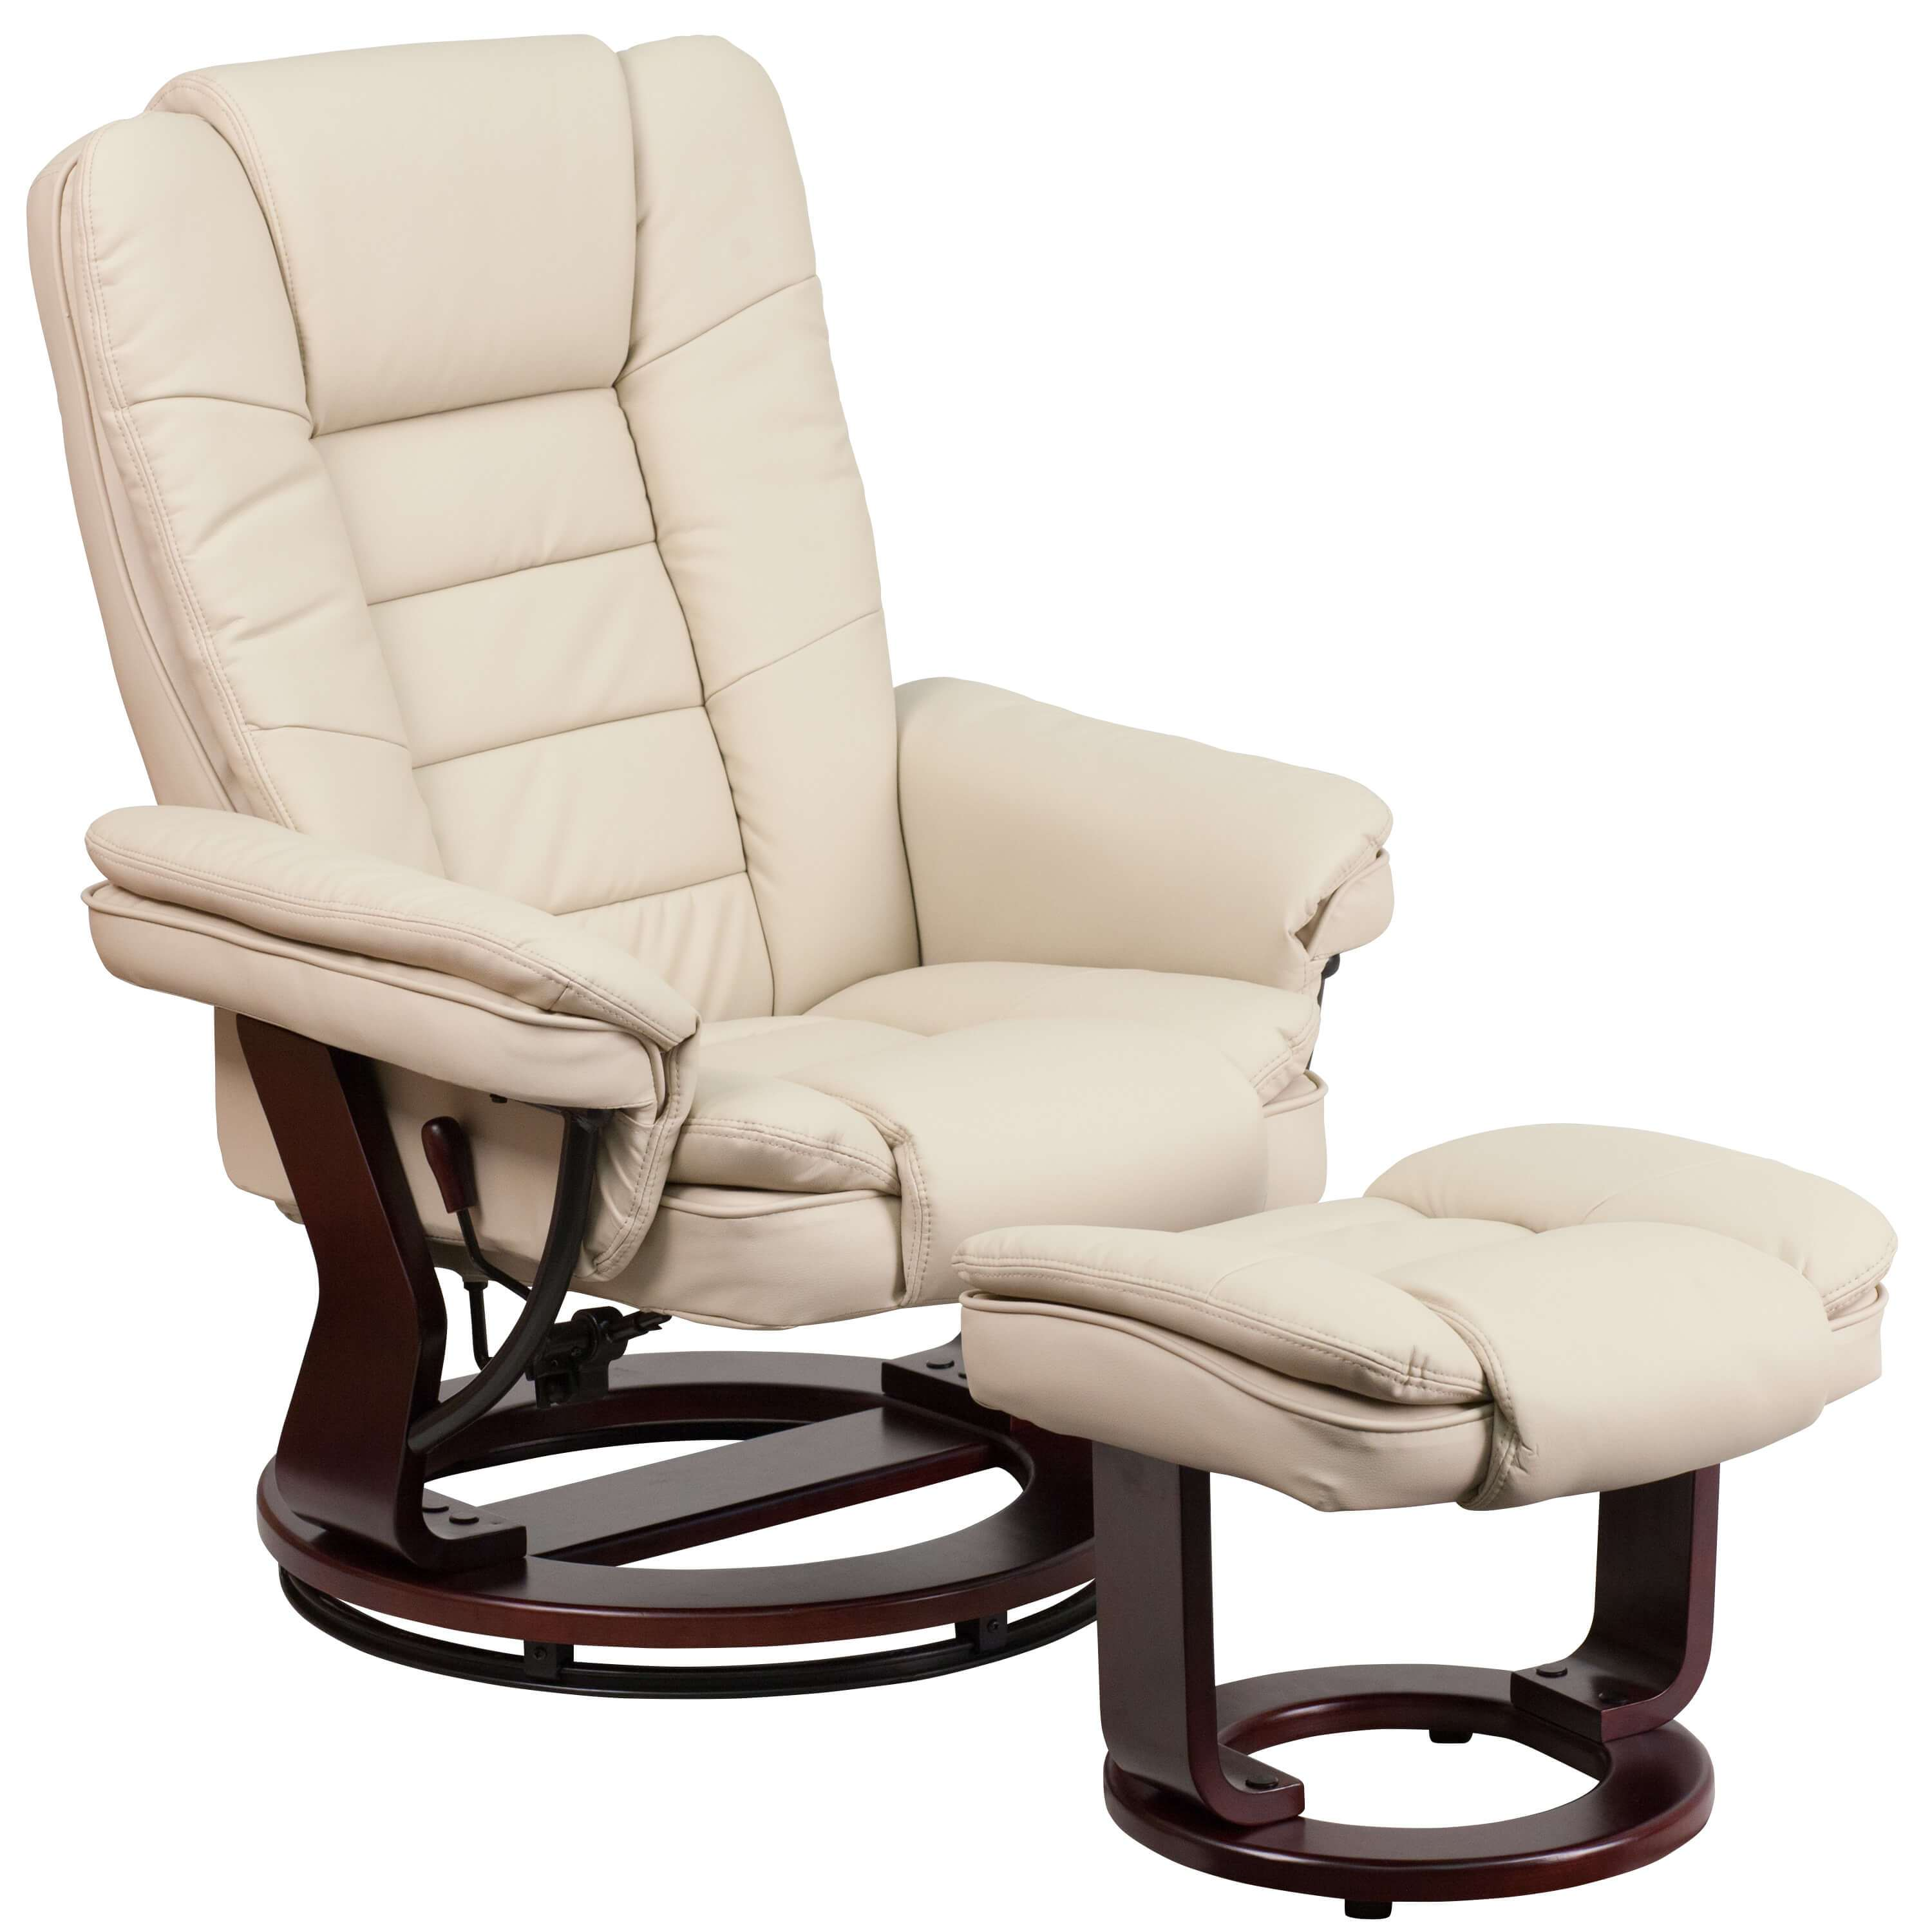 Swivel recliner swivel recliner CUB BT 7818 BGE GG FLA